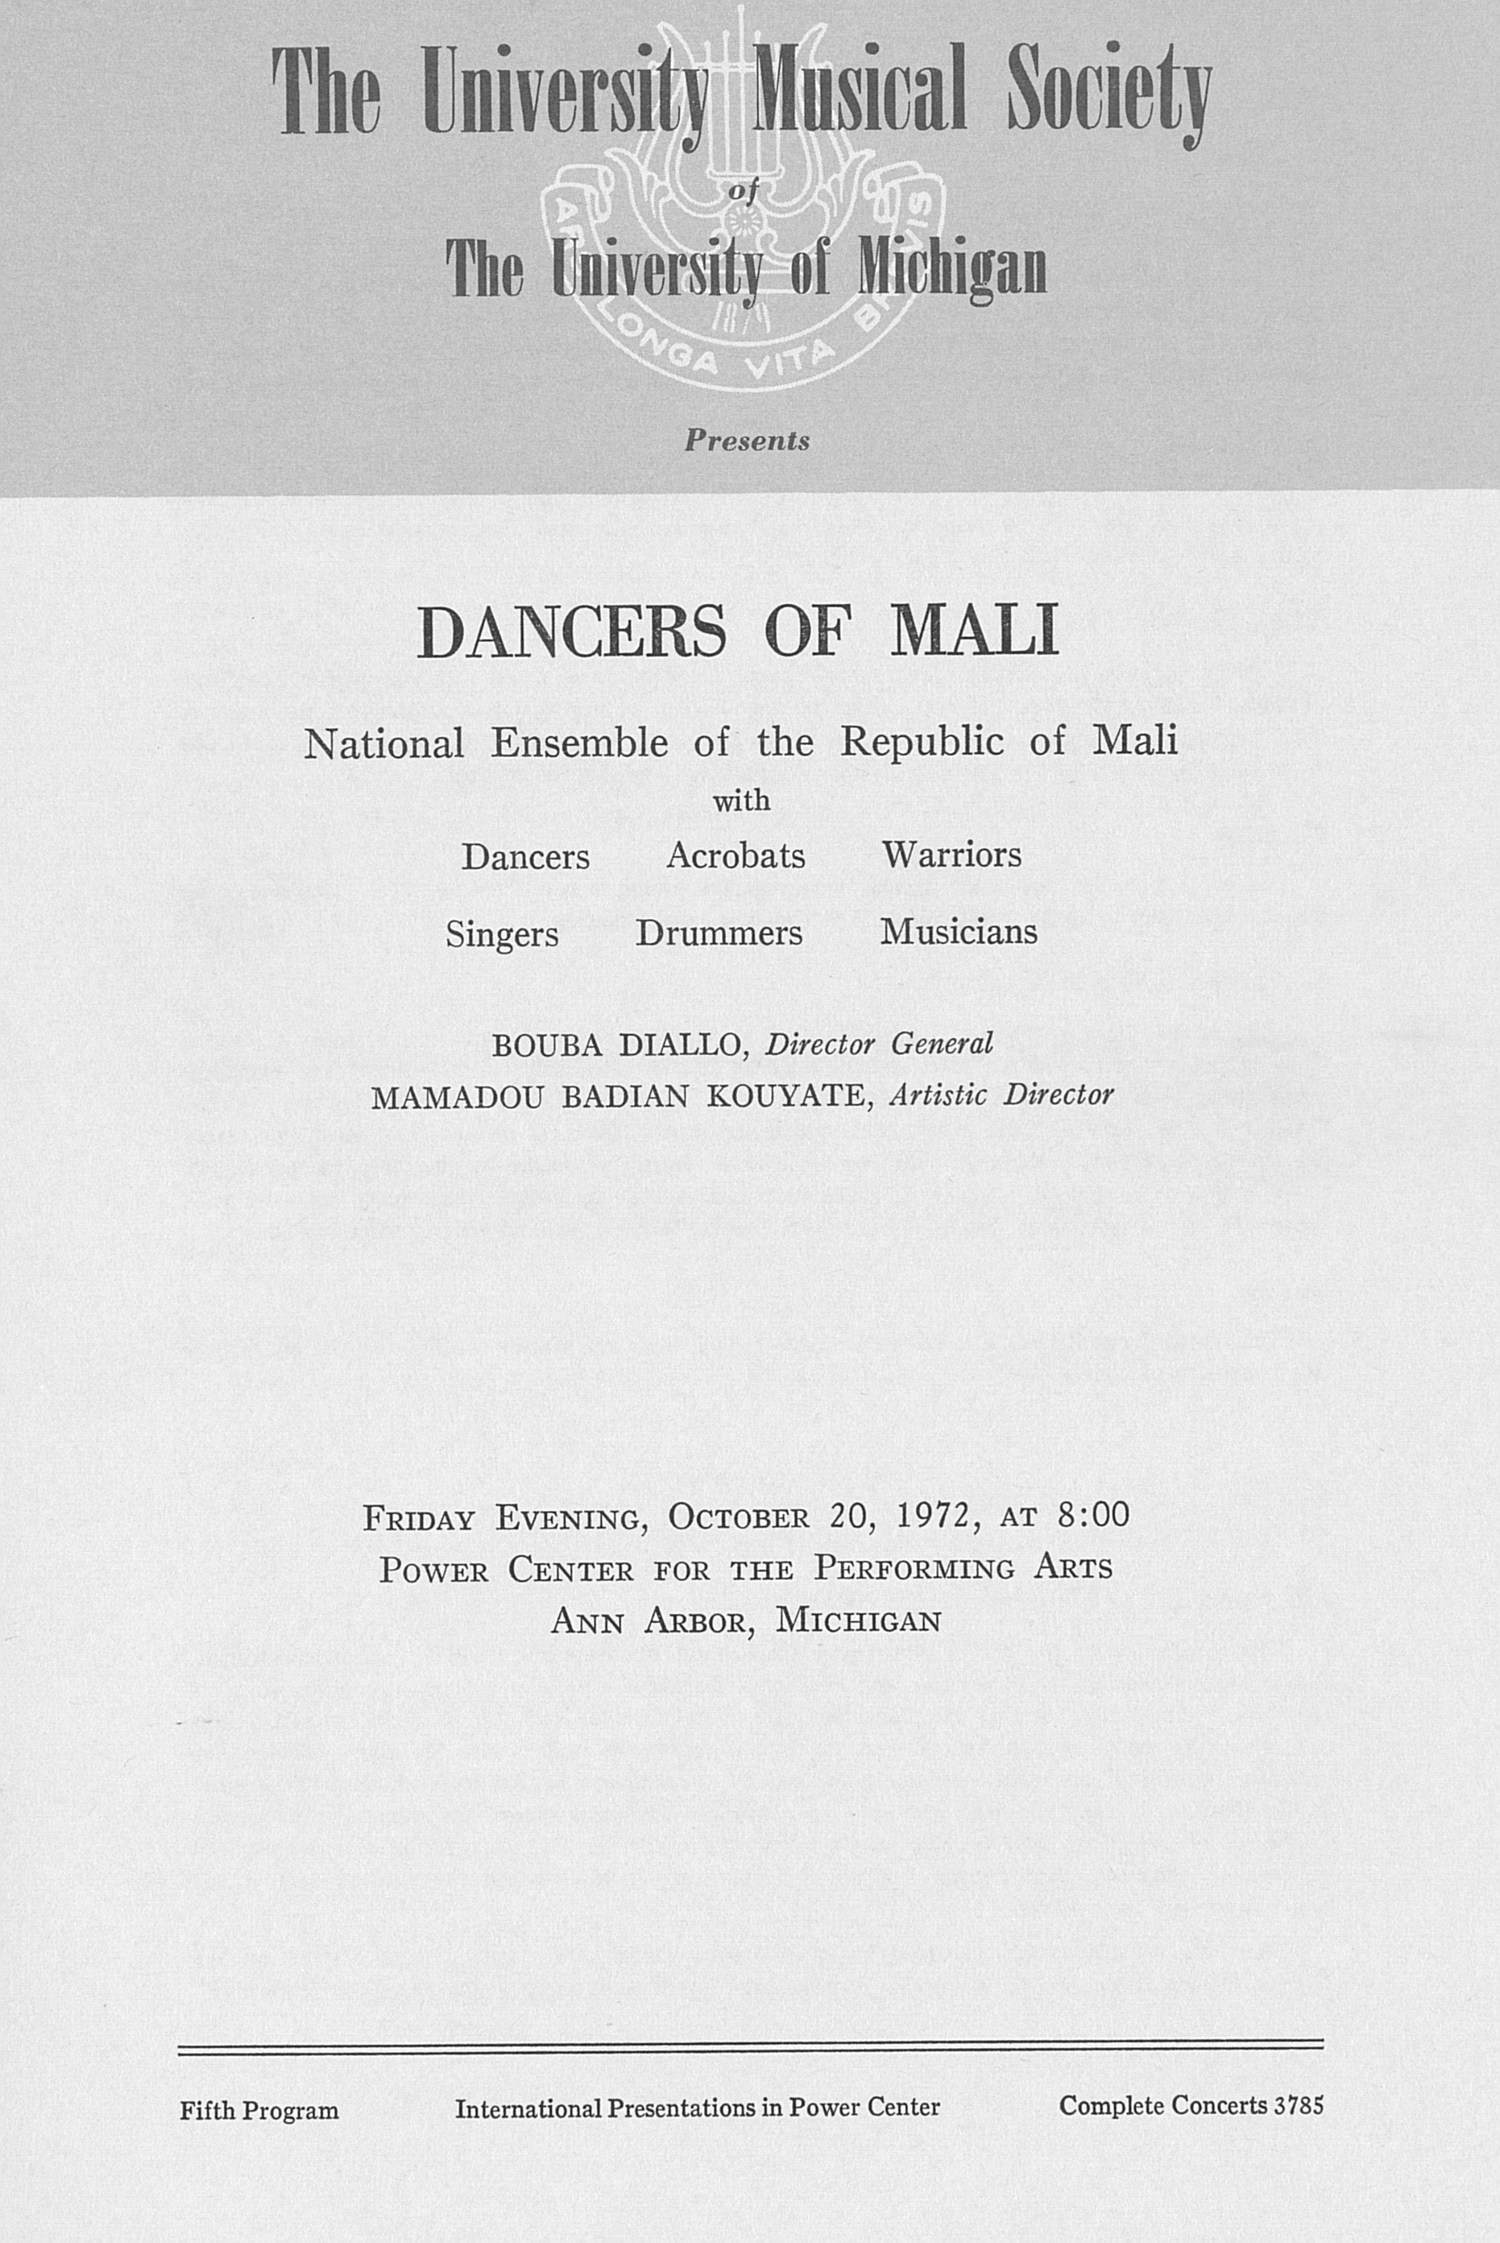 UMS Concert Program, October 20, 1972: Dancers Of Mali --  image